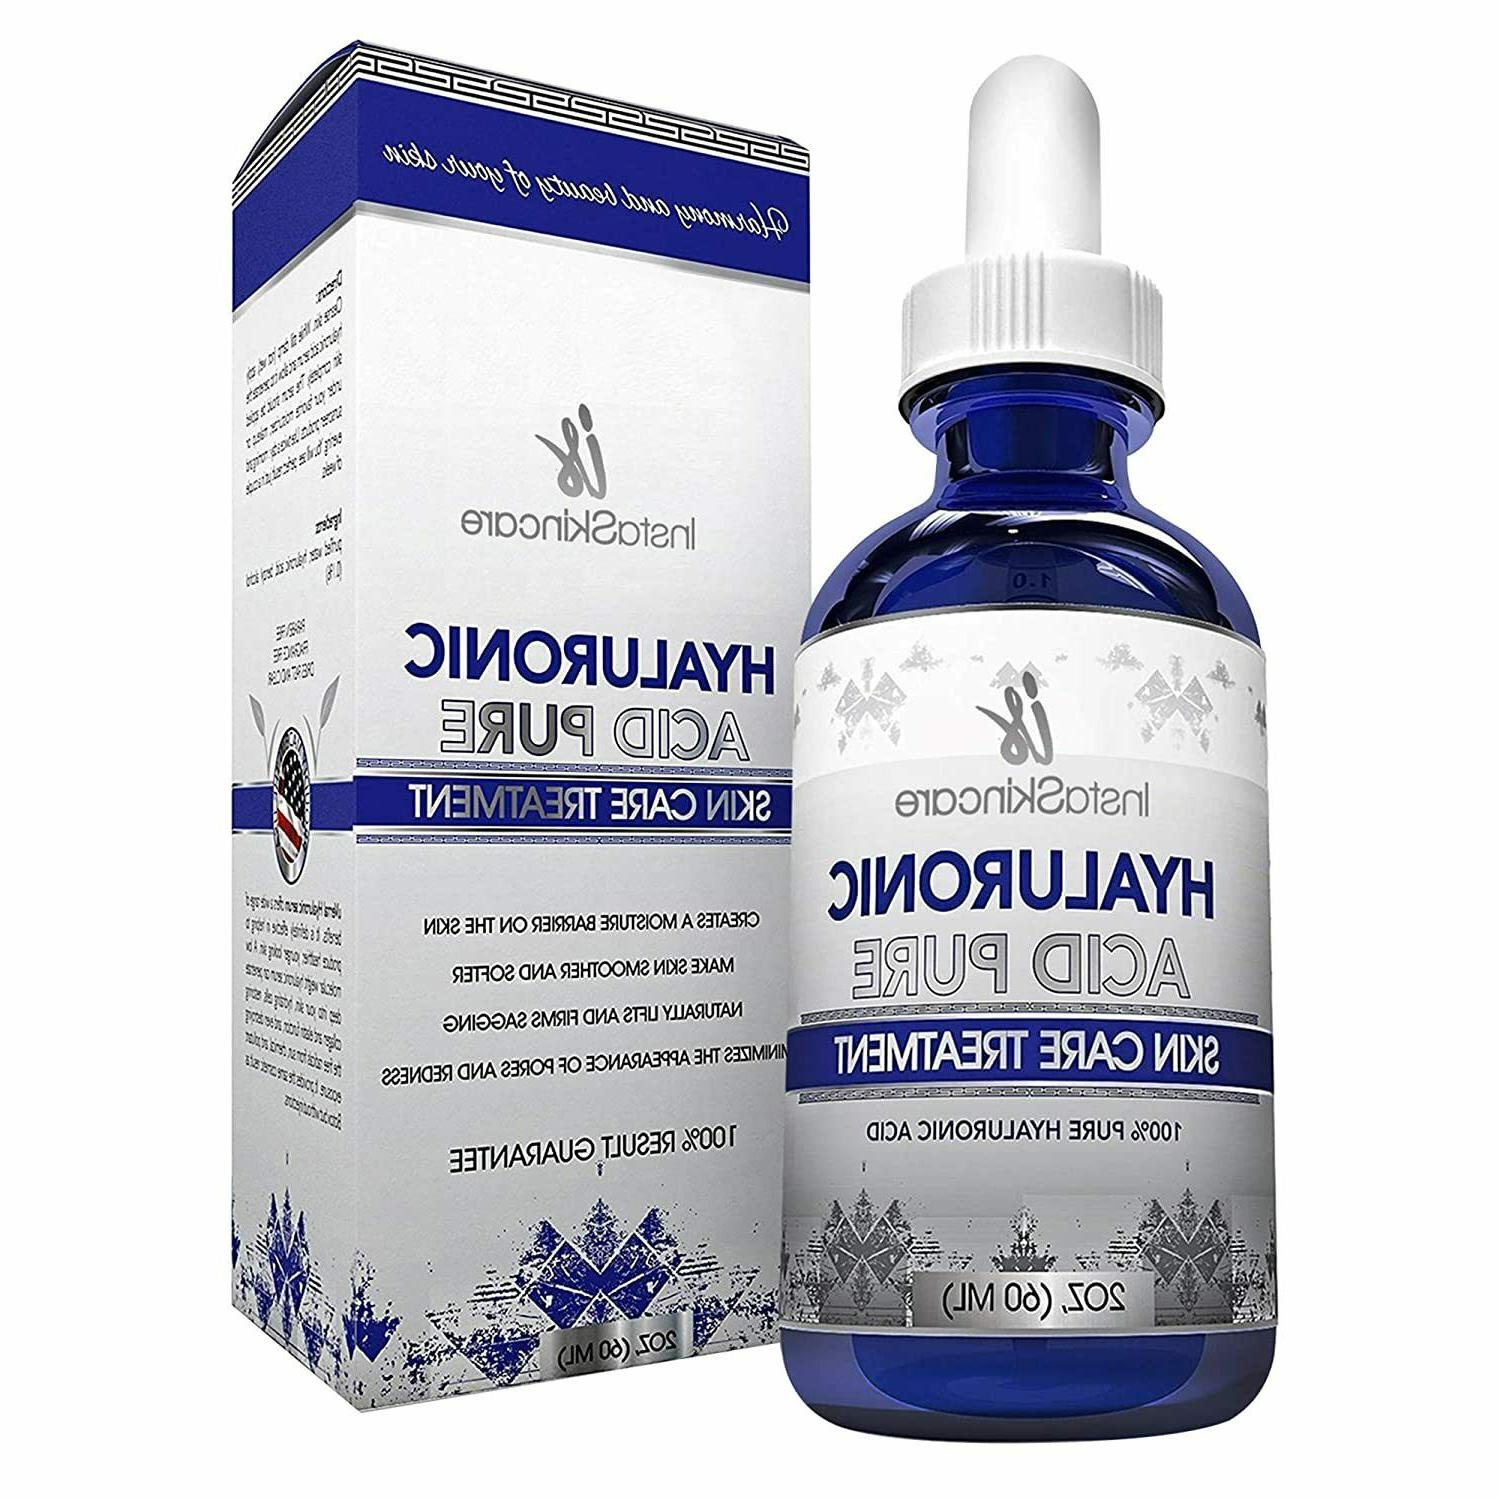 hyaluronic acid for face 100 percent pure